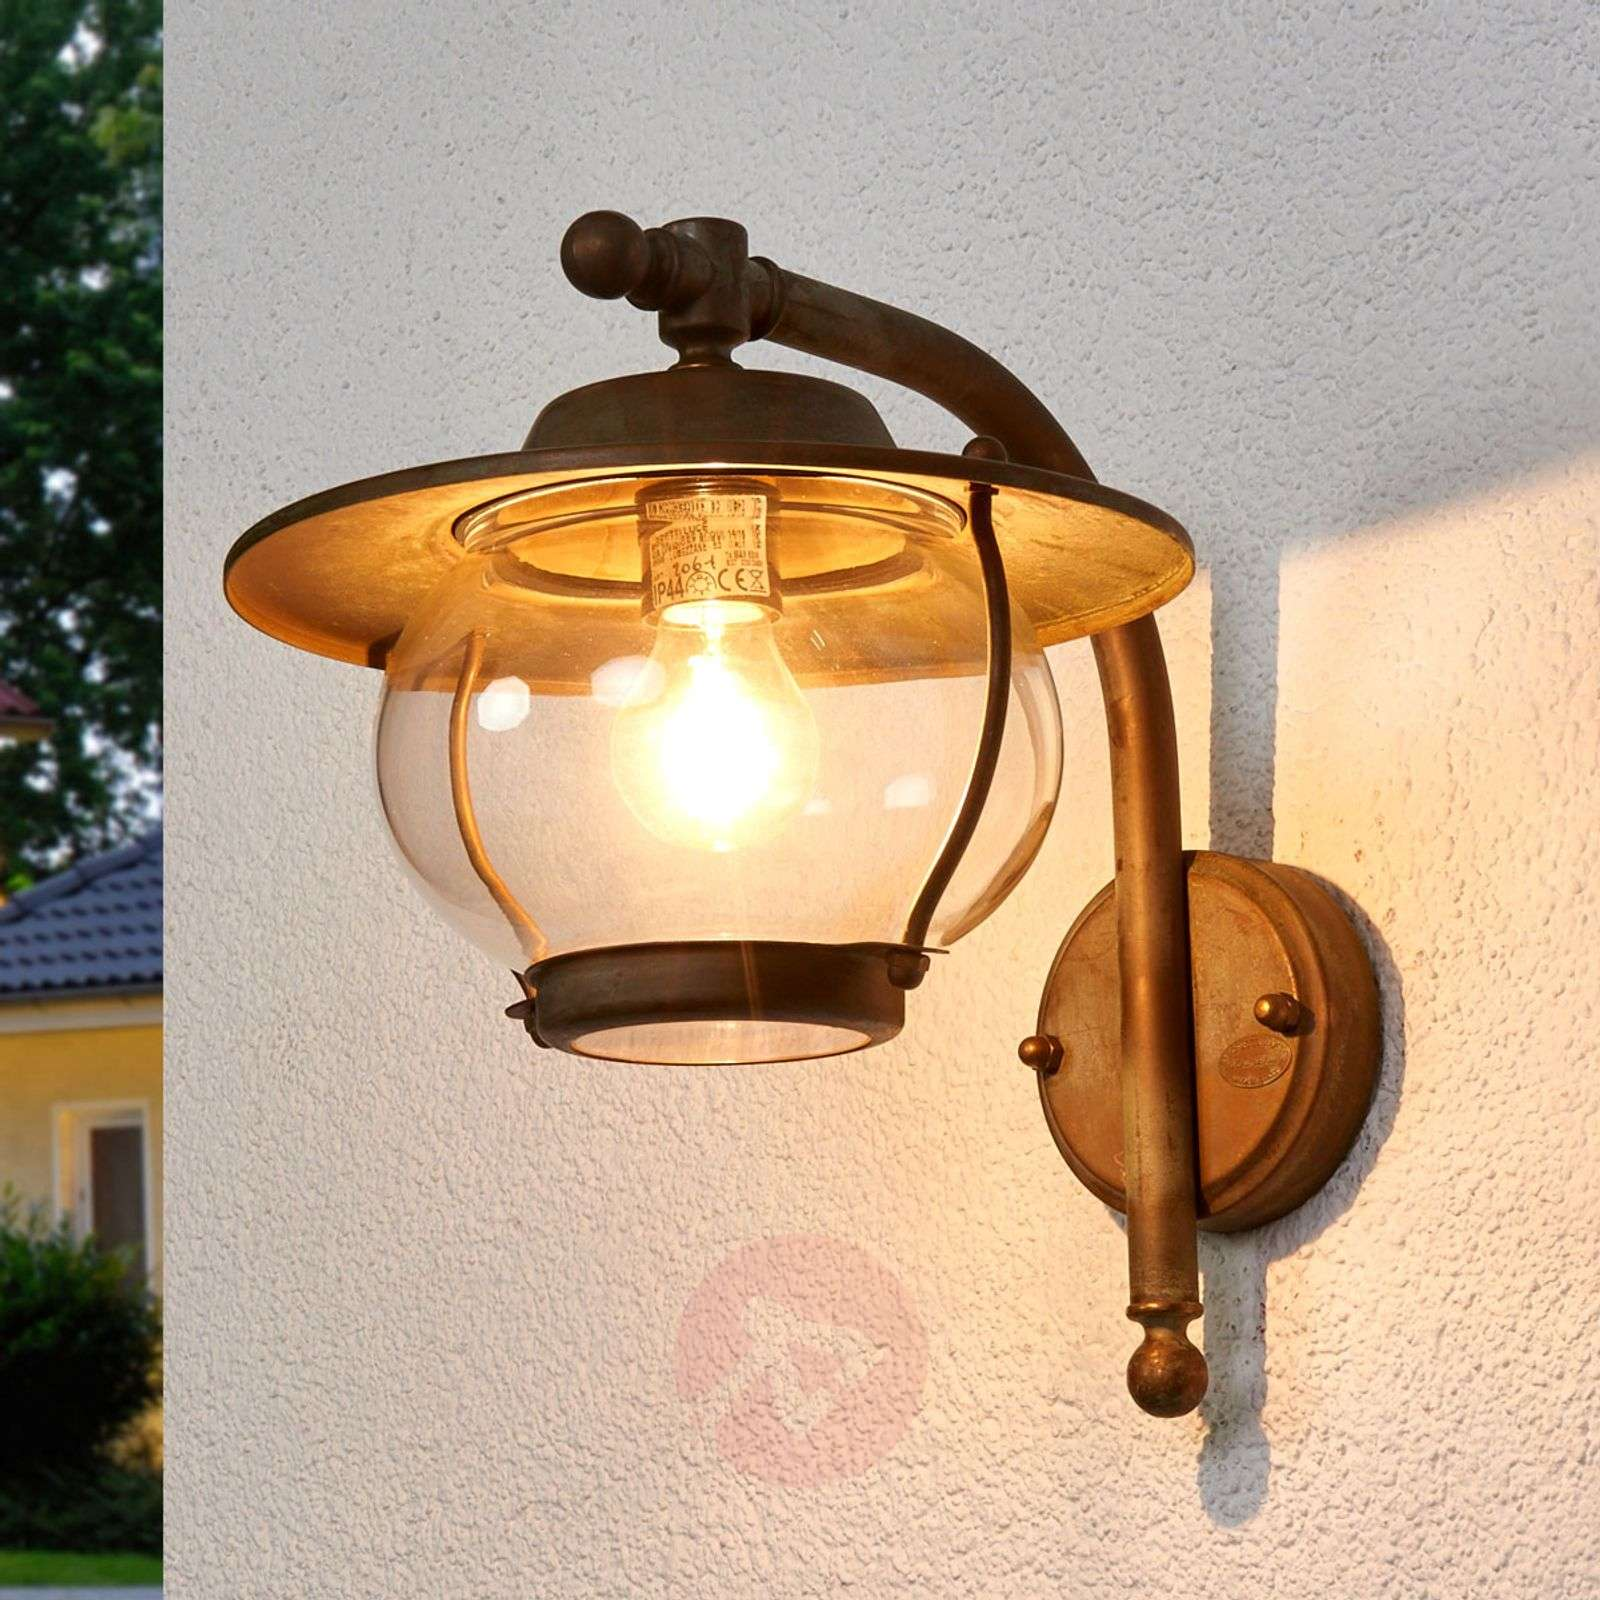 Lovely outdoor wall light Adessora seawater-res.-6515249-01